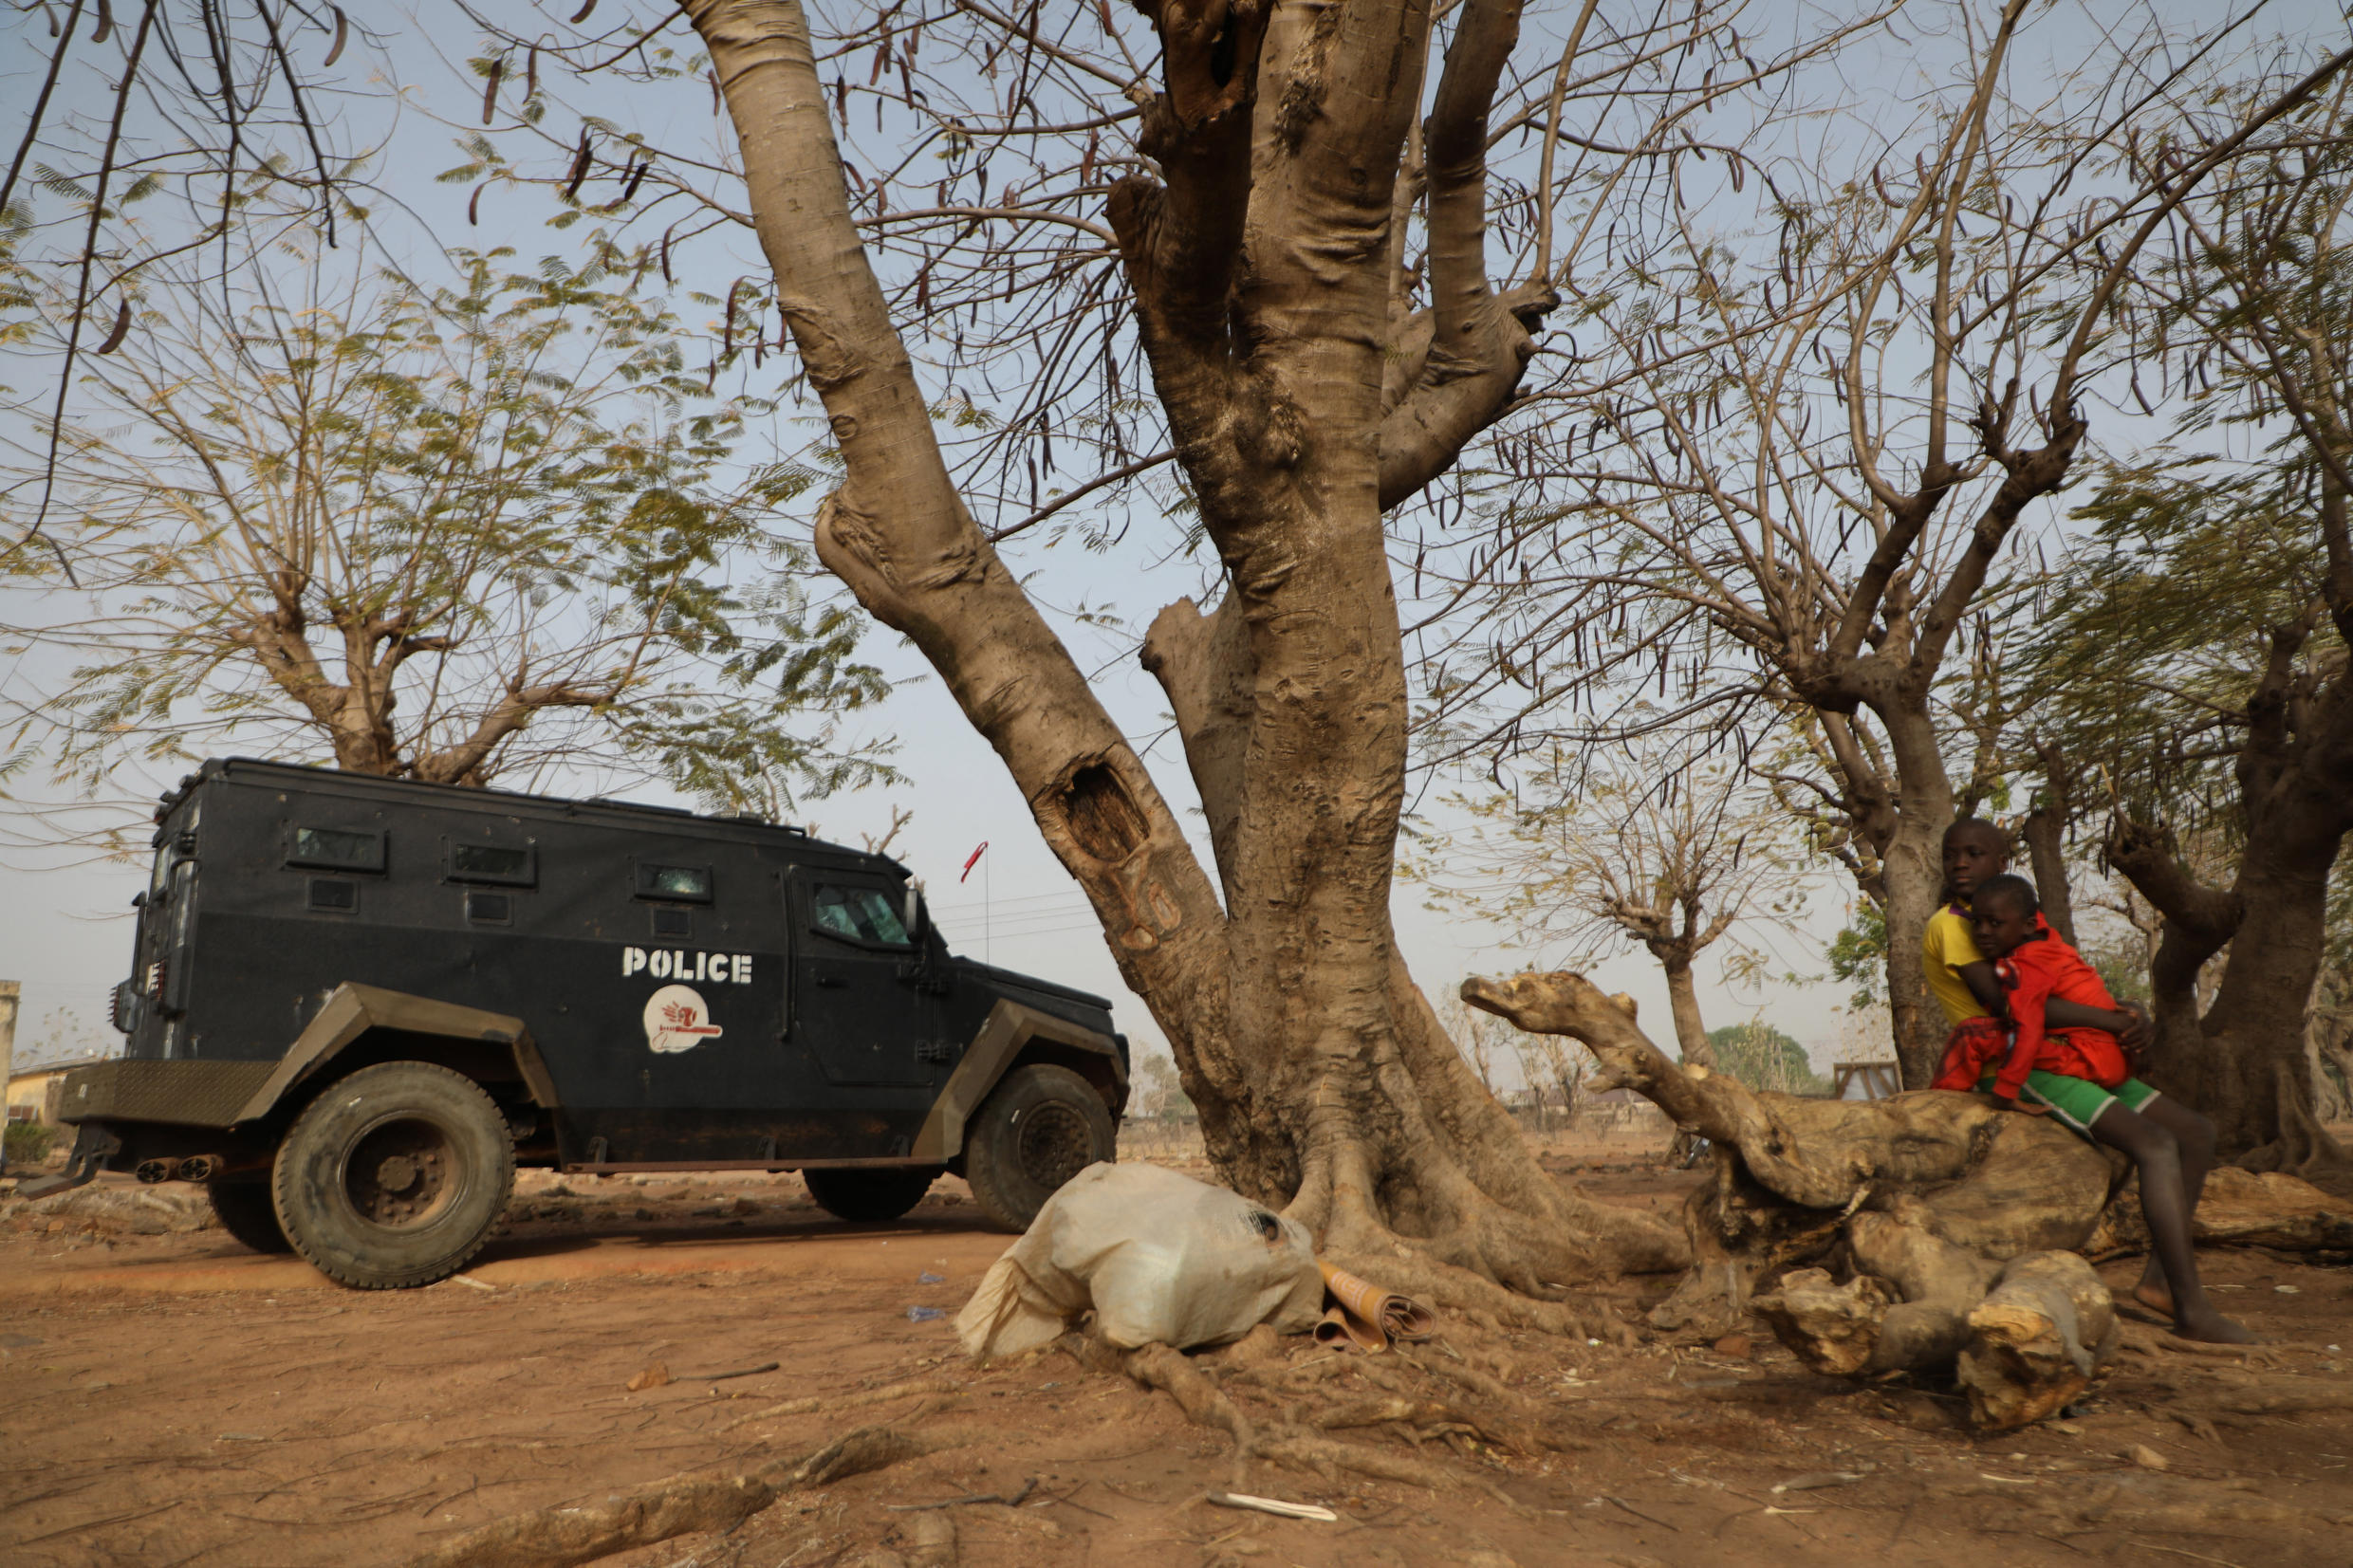 Kidnapping in Niger state, Nigeria